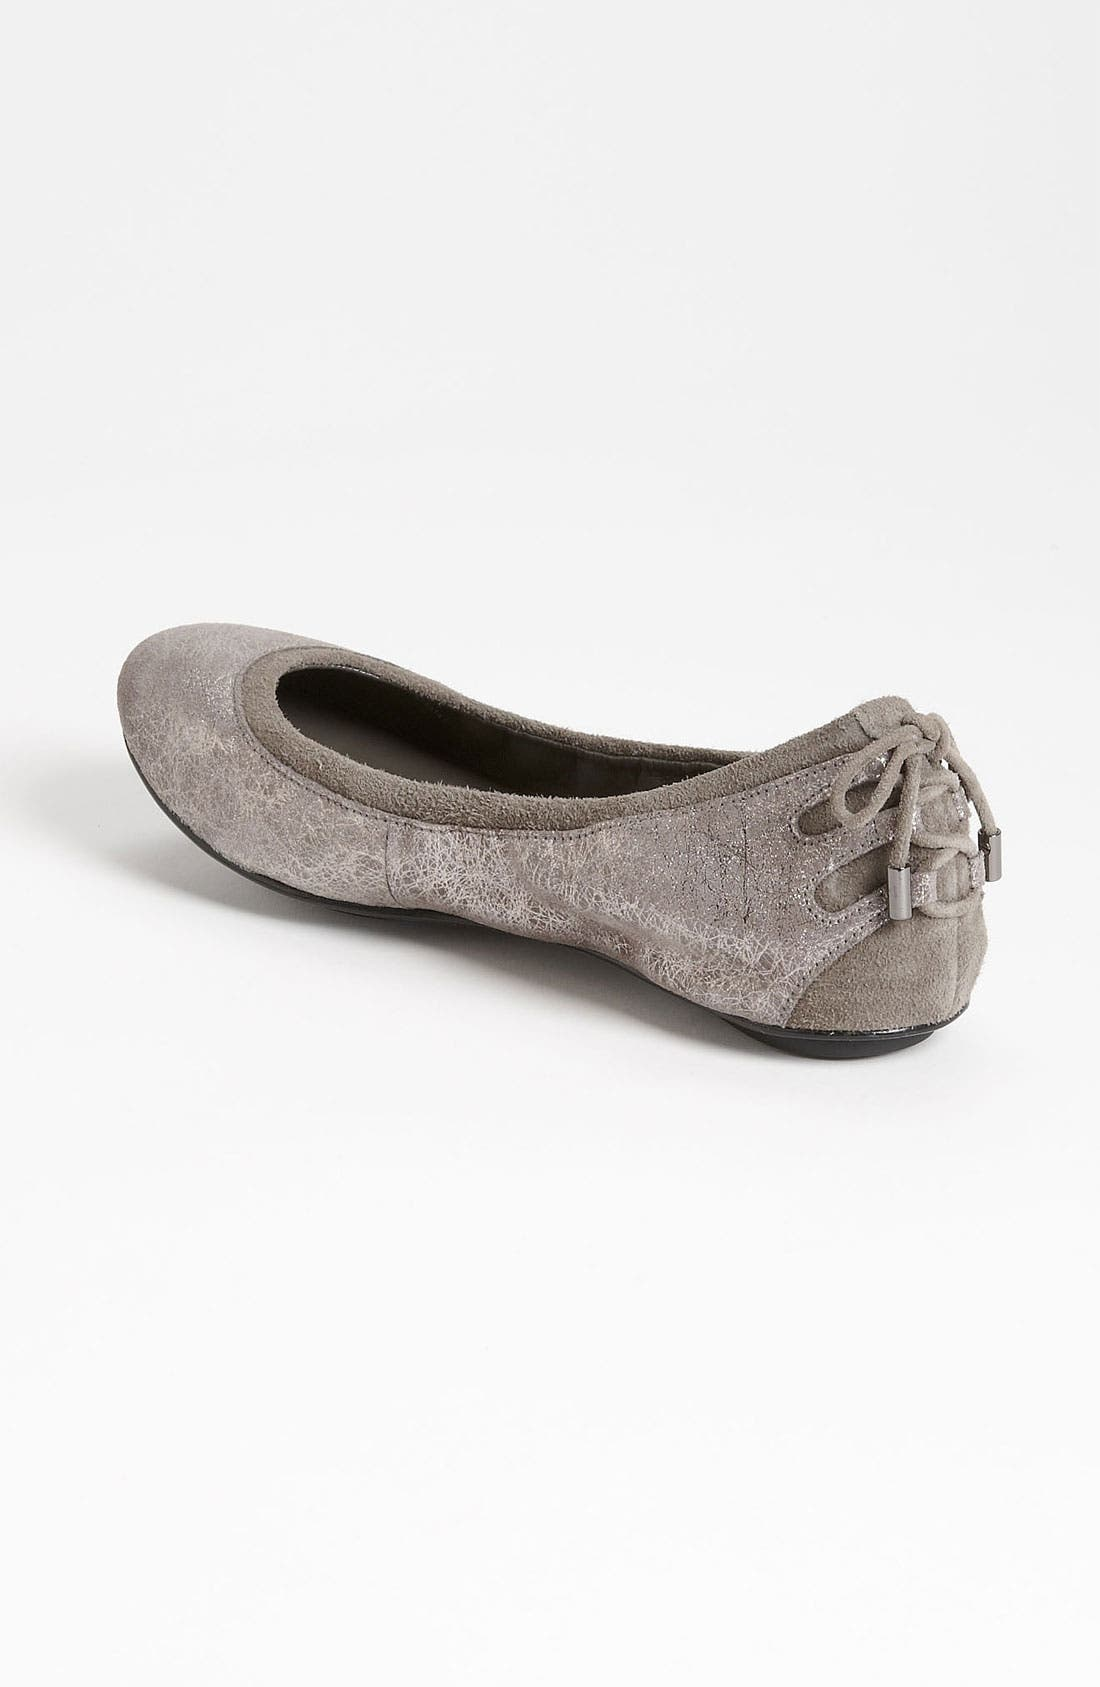 ,                             Maria Sharapova by Cole Haan 'Air Bacara' Flat,                             Alternate thumbnail 10, color,                             021